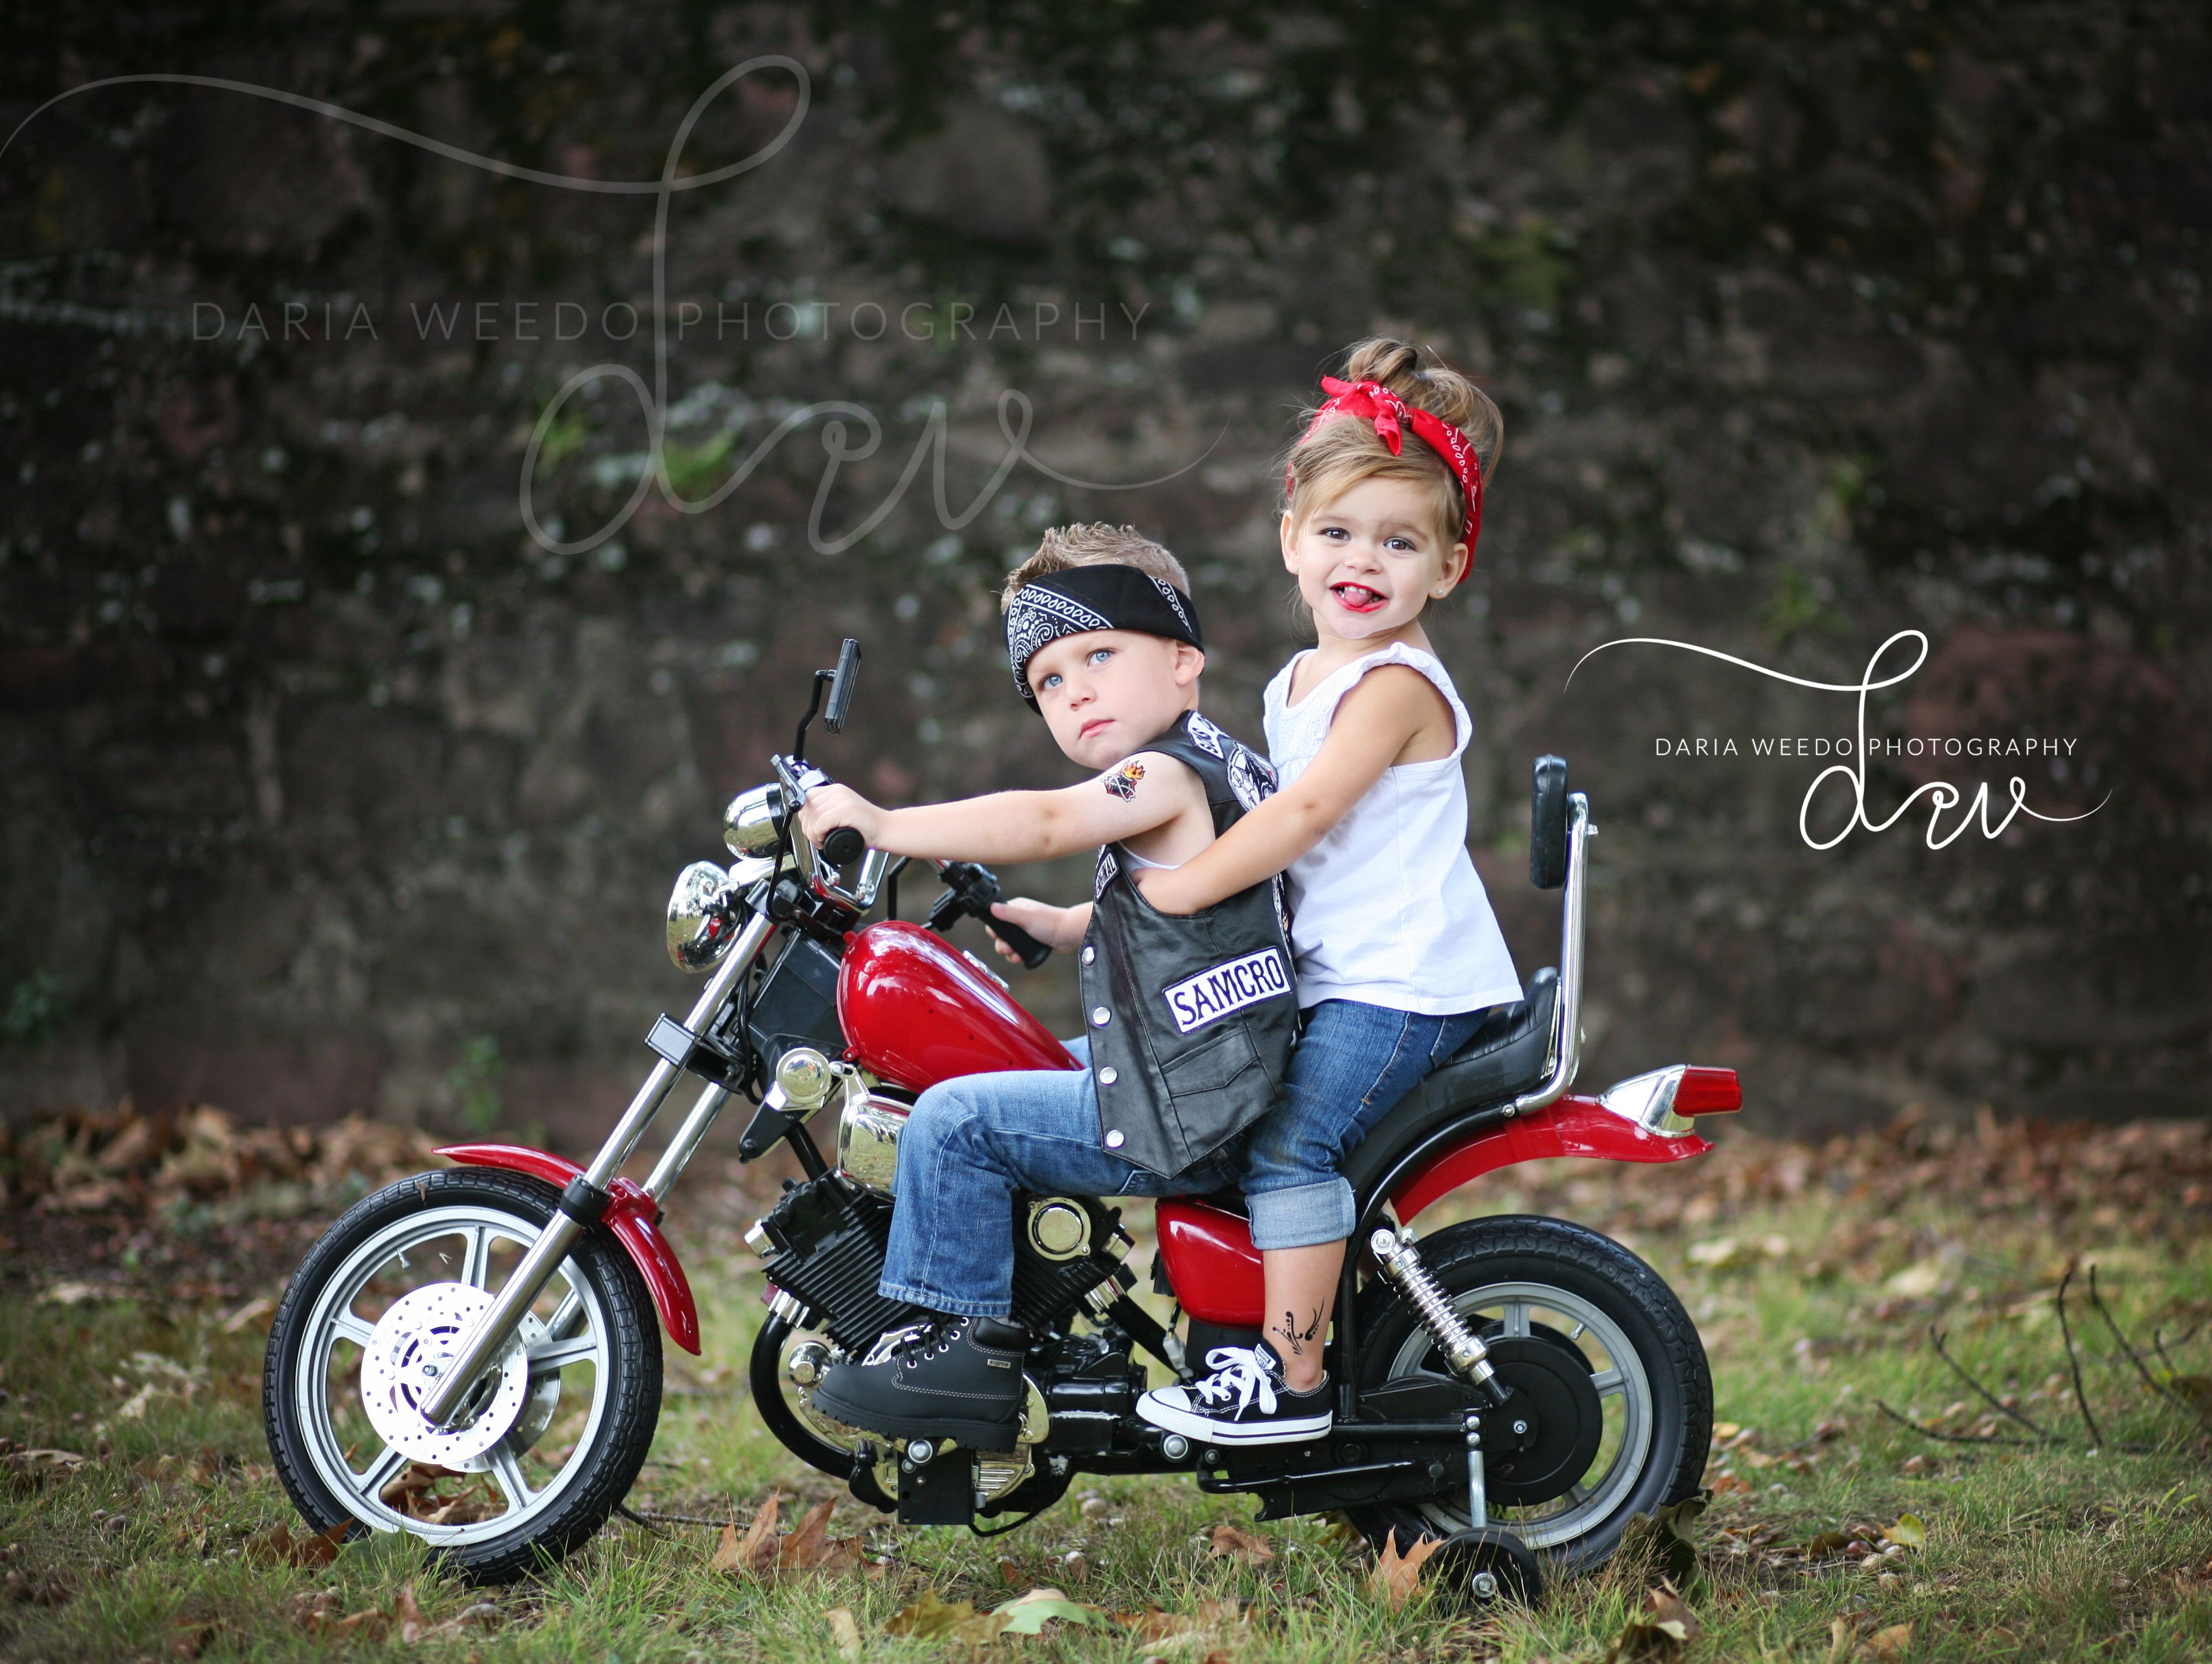 Followers, Following, Posts - See Instagram photos and videos from KID BIKER MOTORCYCLE APPAREL (@kidbikerapparel).